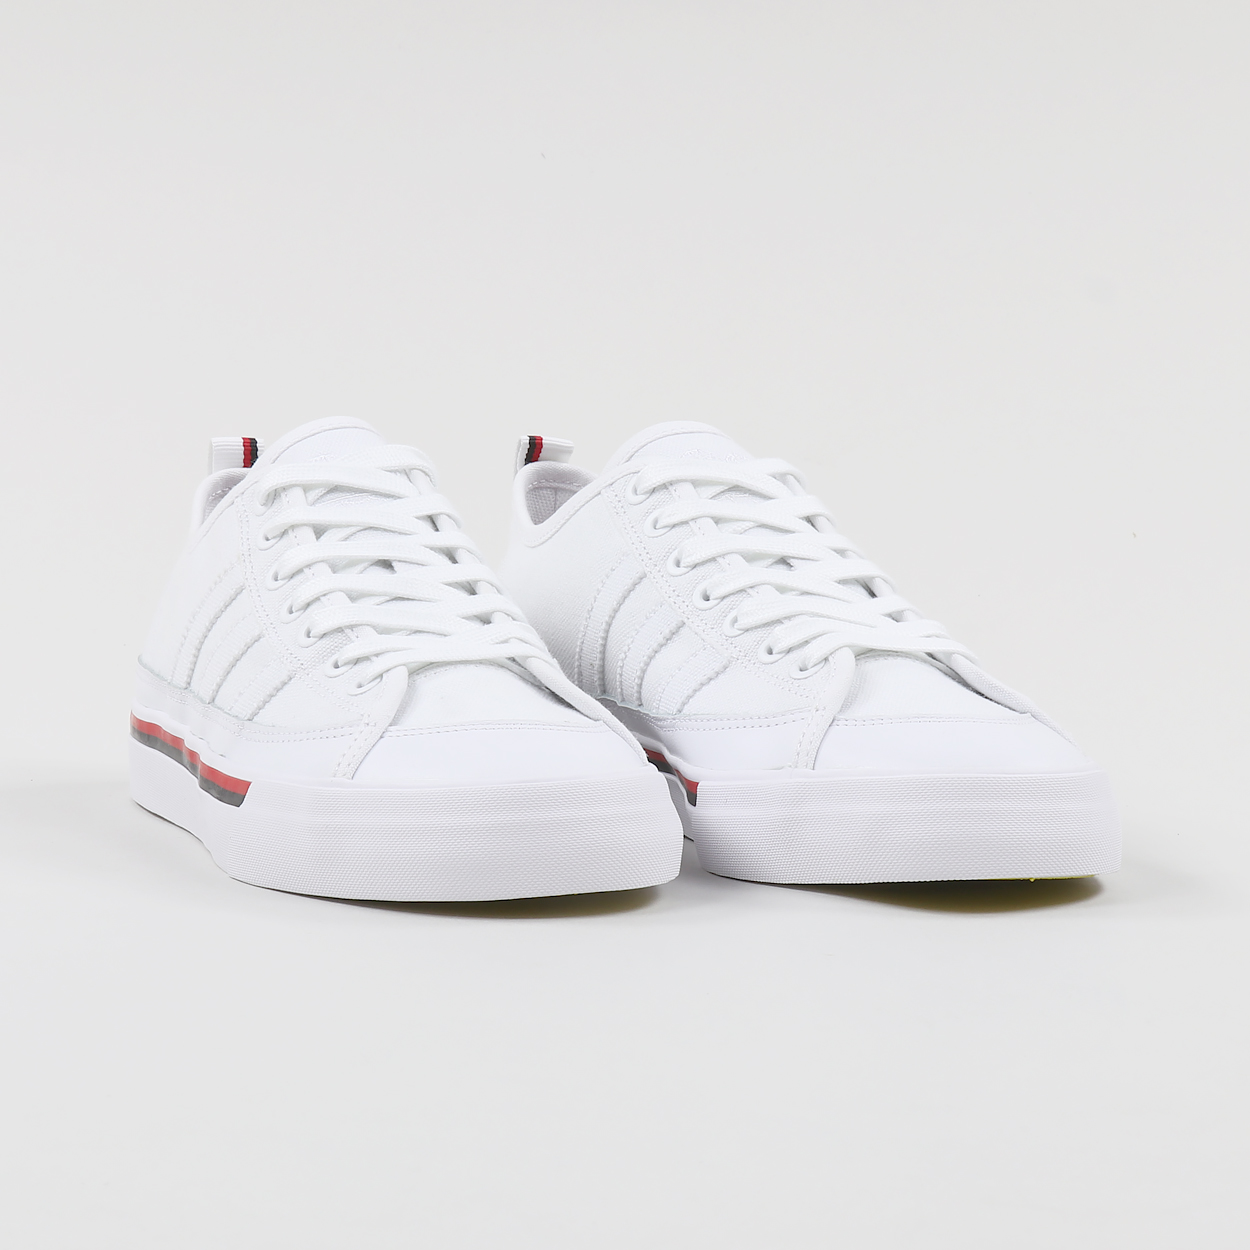 Buying Cheap adidas Matchcourt RX3 Na Kel White Shoes Online